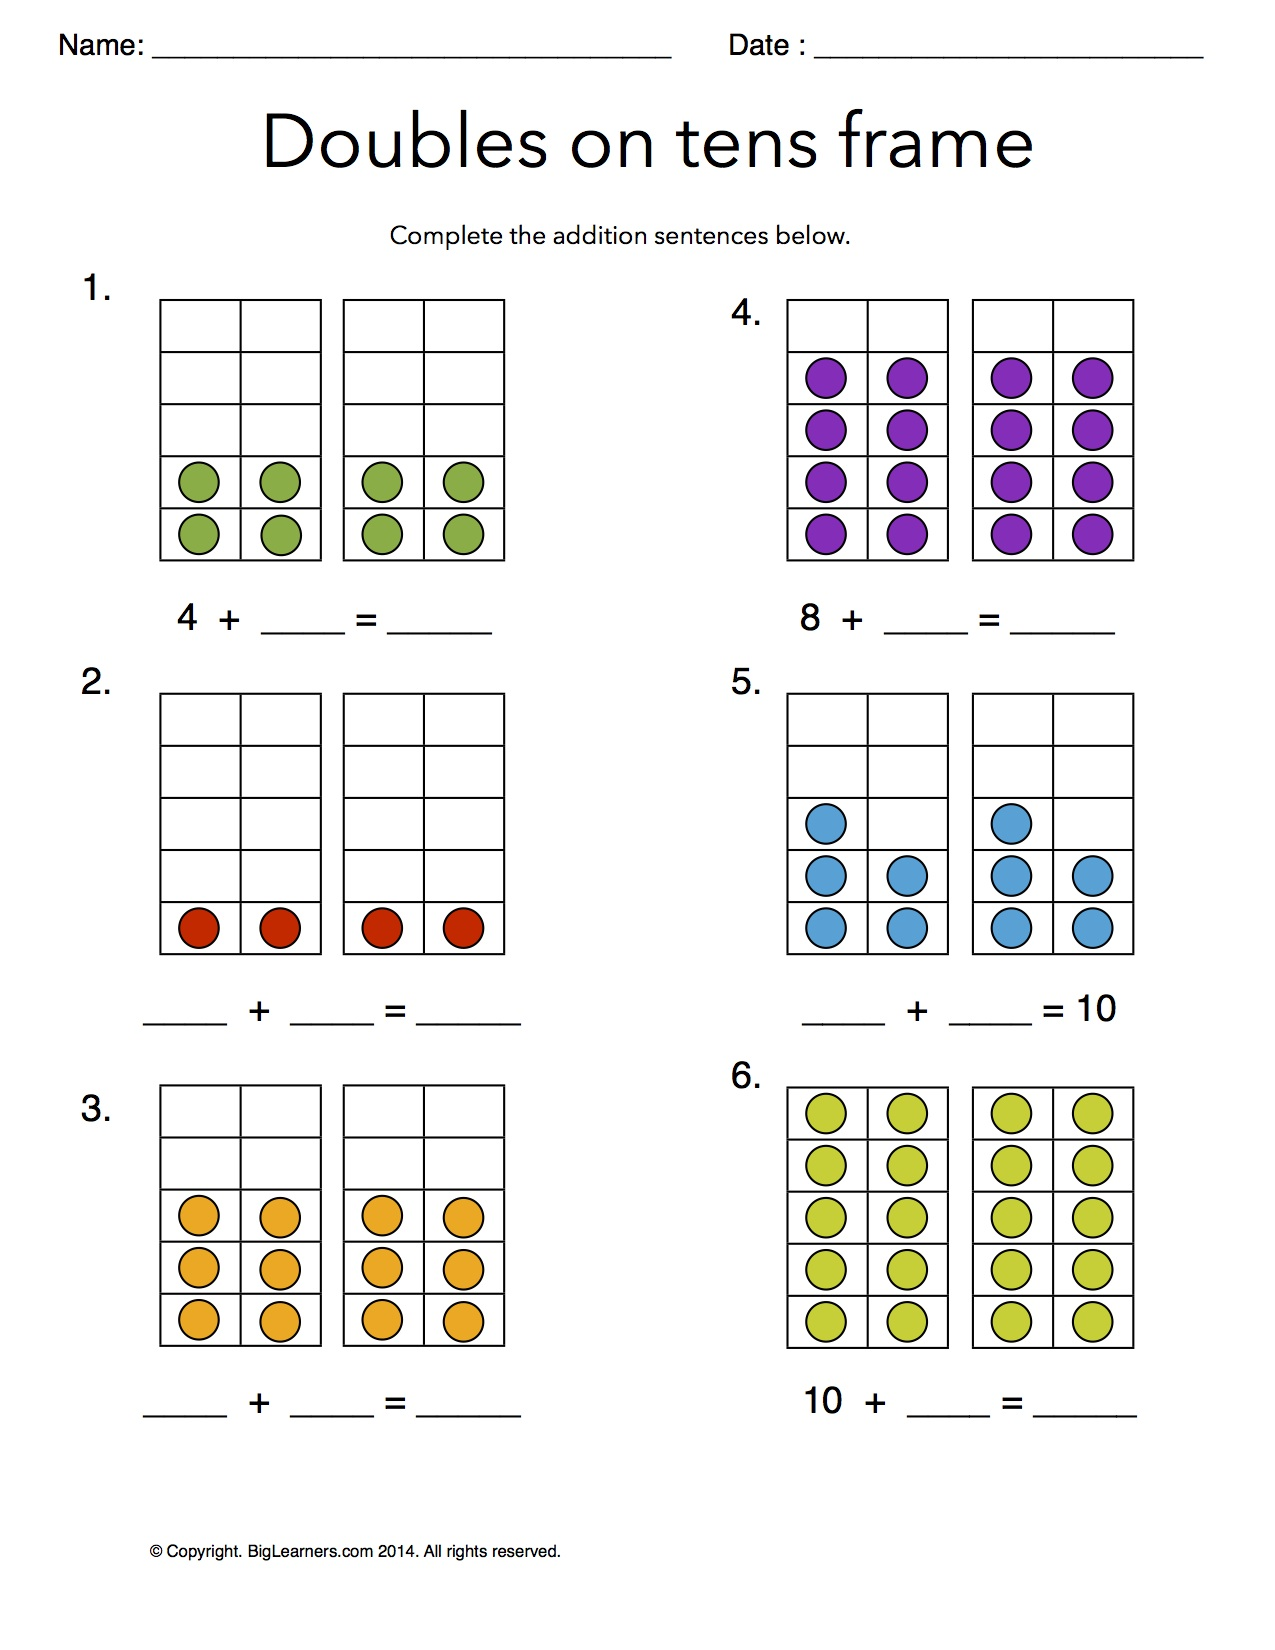 worksheet Math Worksheets Common Core grade 1 free common core math worksheets biglearners preview image for worksheet with title doubles on tens frames